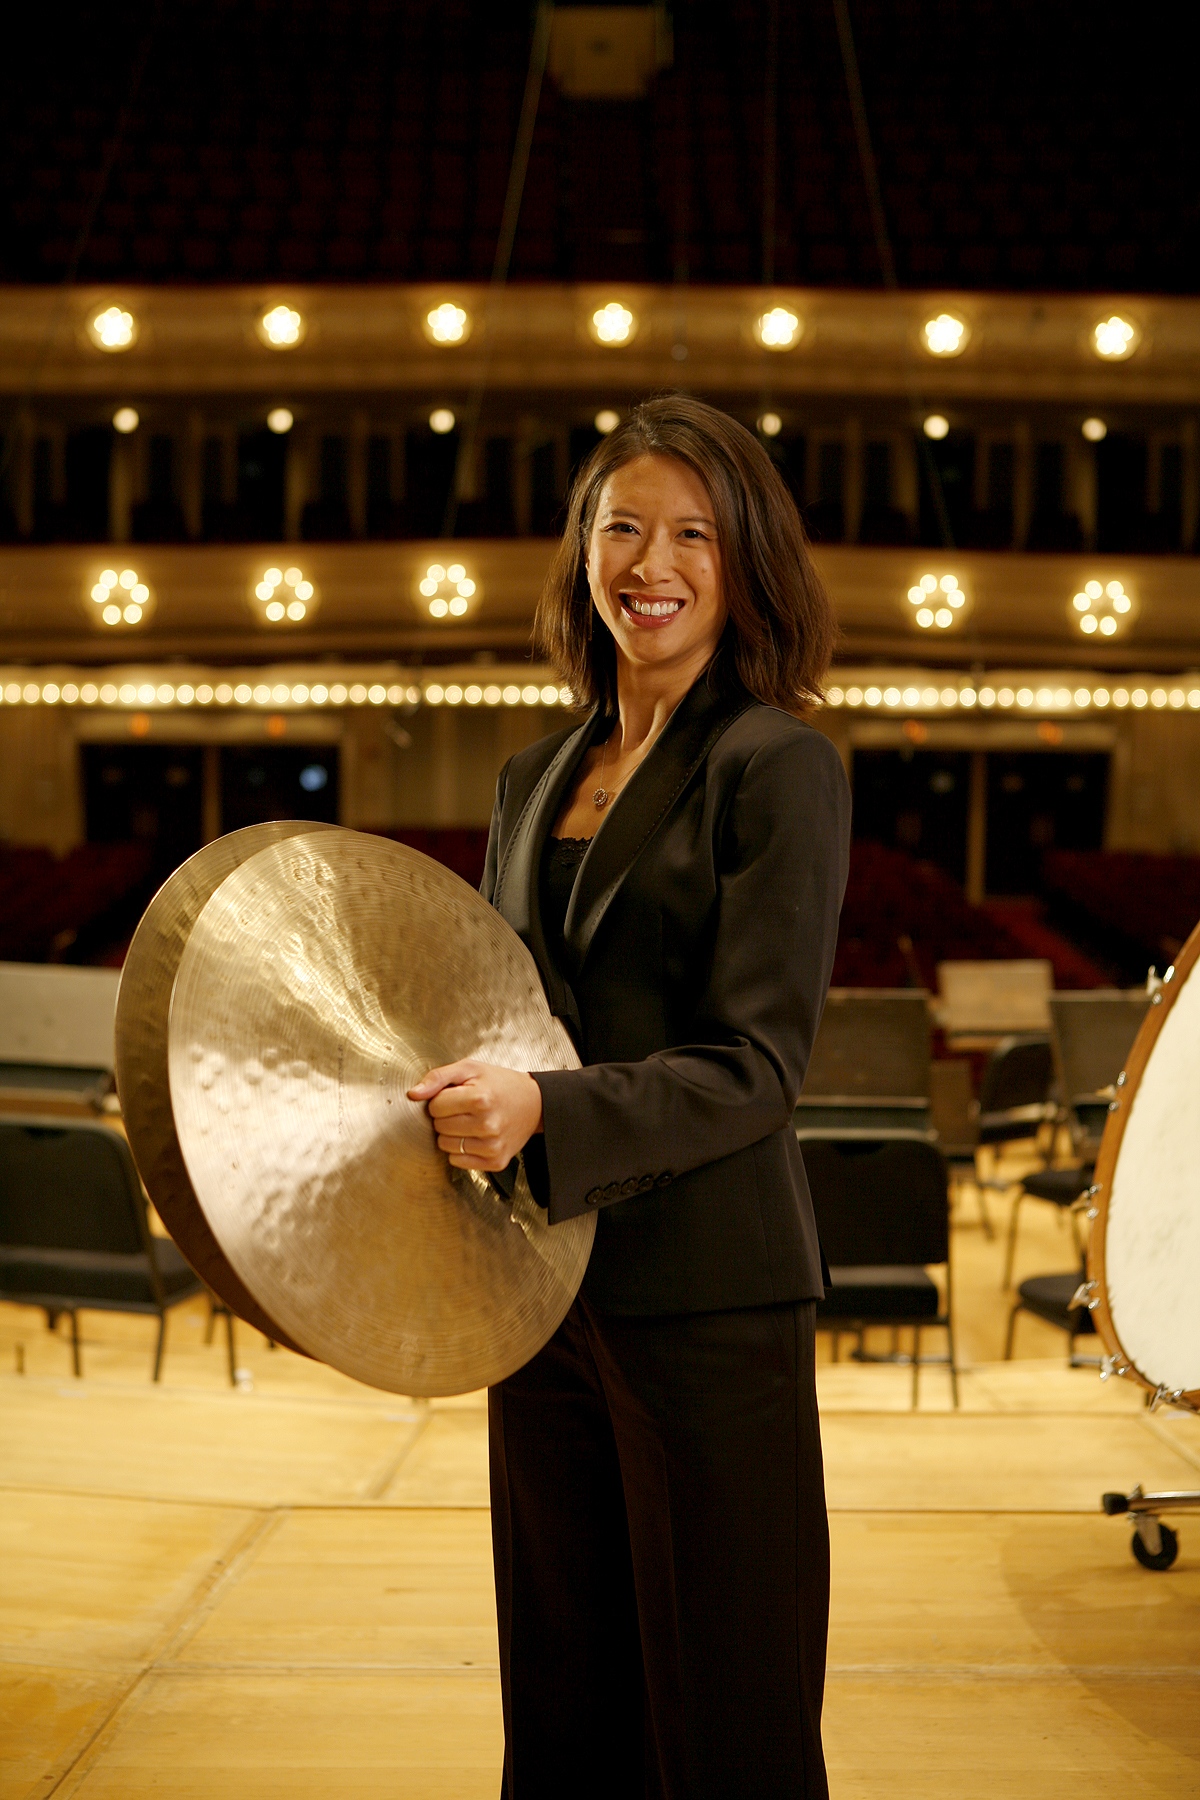 Chicago Symphony Orchestra percussion Section. Cynthia Yea Strauss